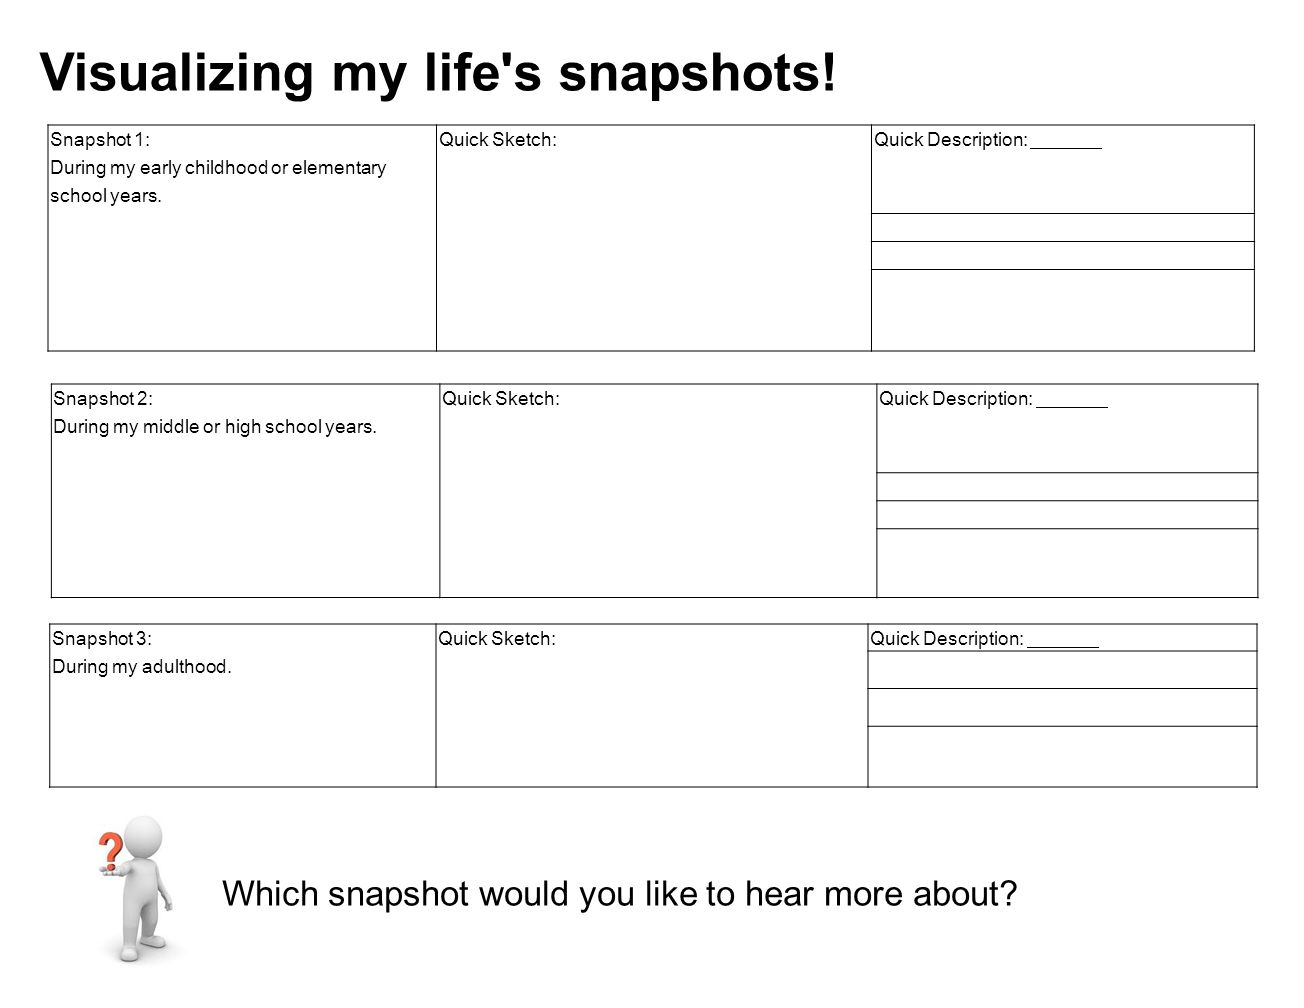 Which snapshot would you like to hear more about? Visualizing my life's snapshots! Snapshot 1: During my early childhood or elementary school years. Q